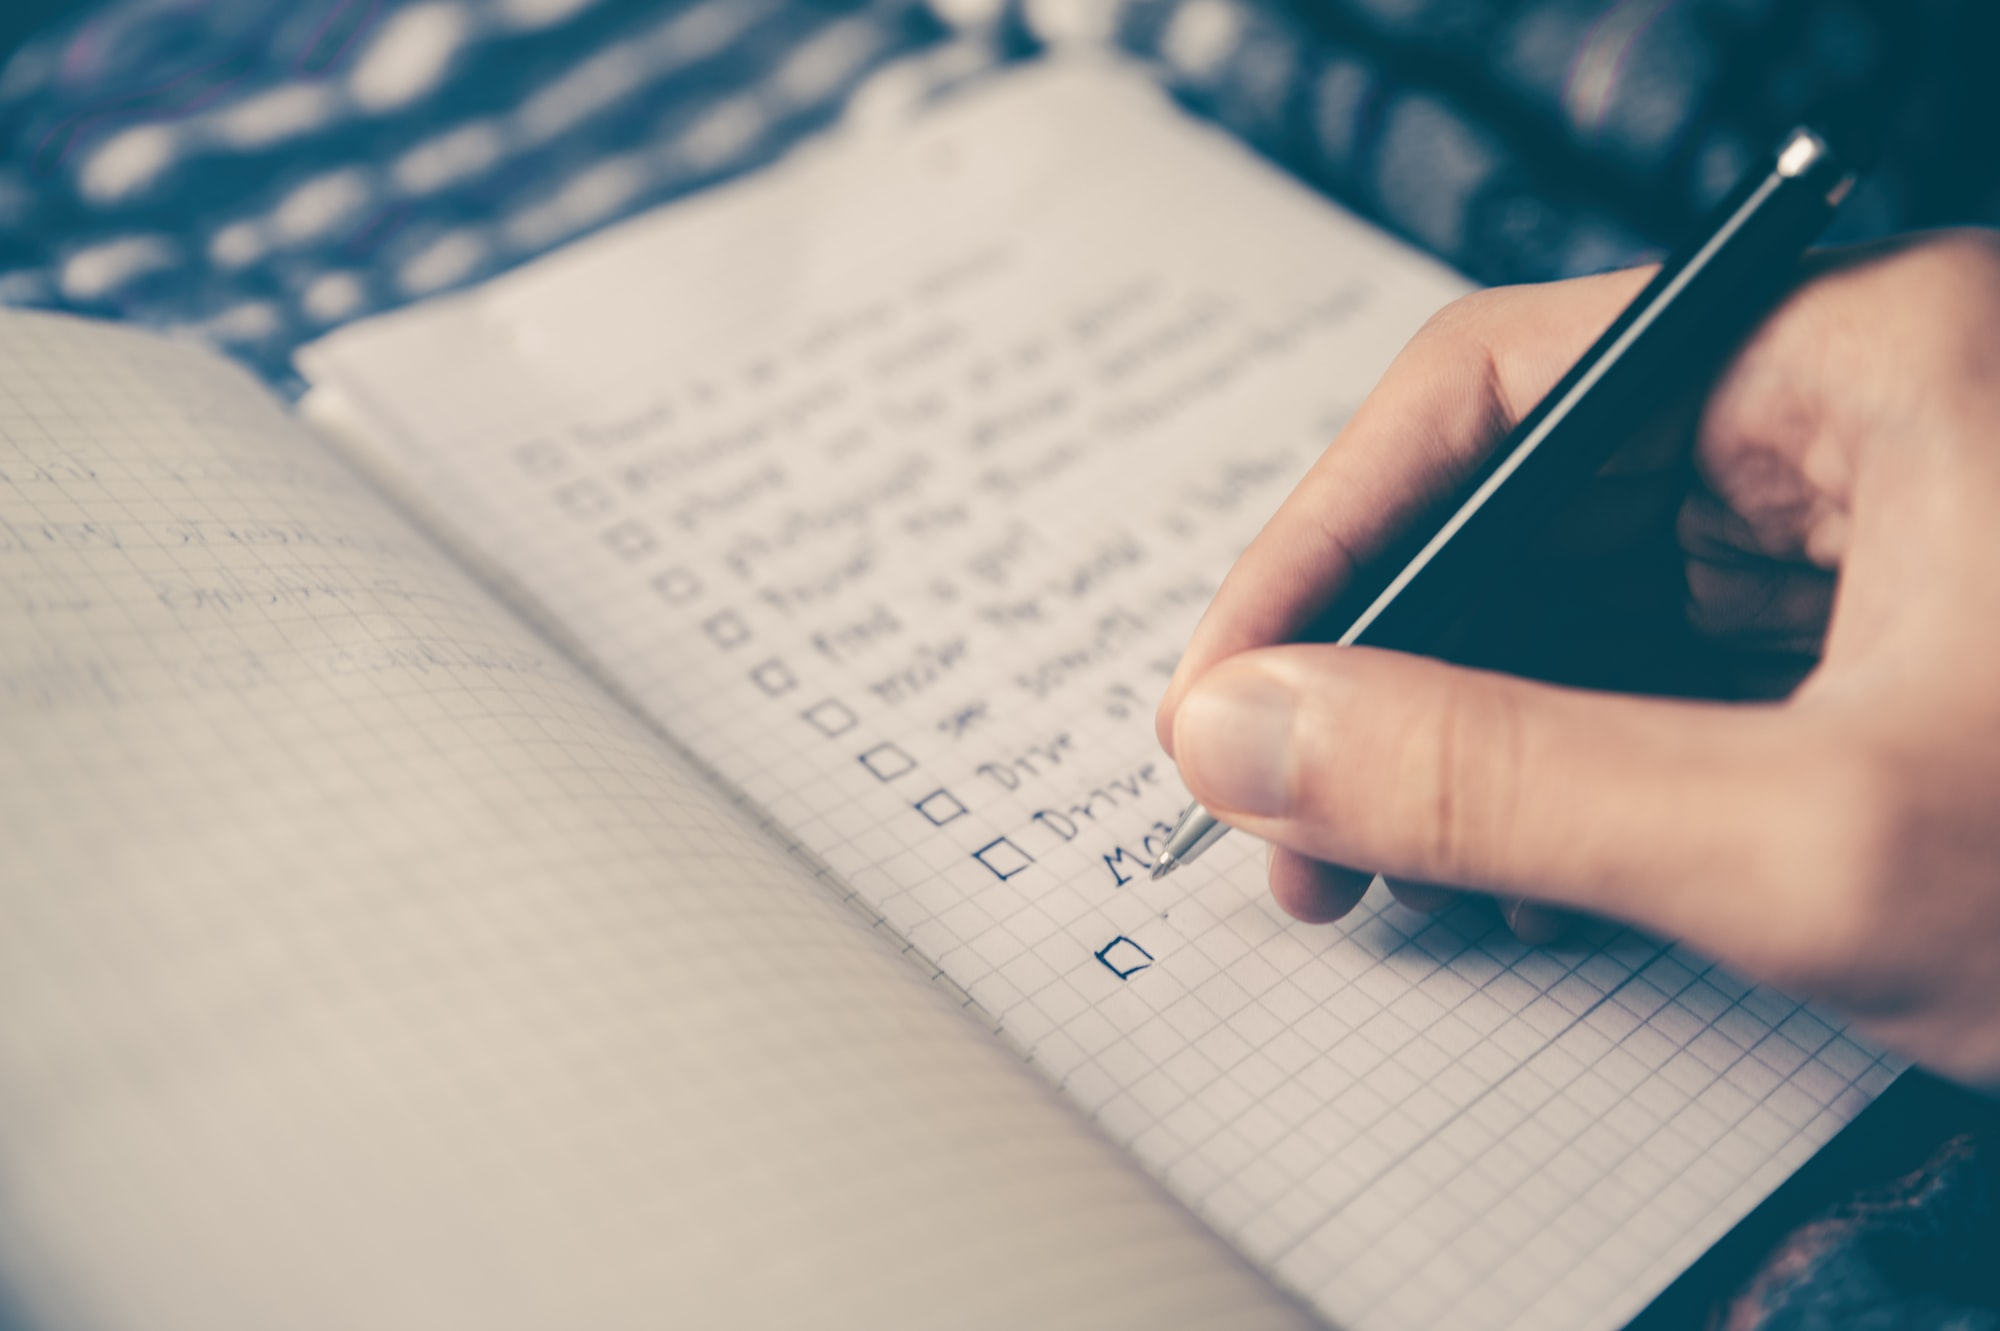 Start with the first task on your TODO-list | Daily #158